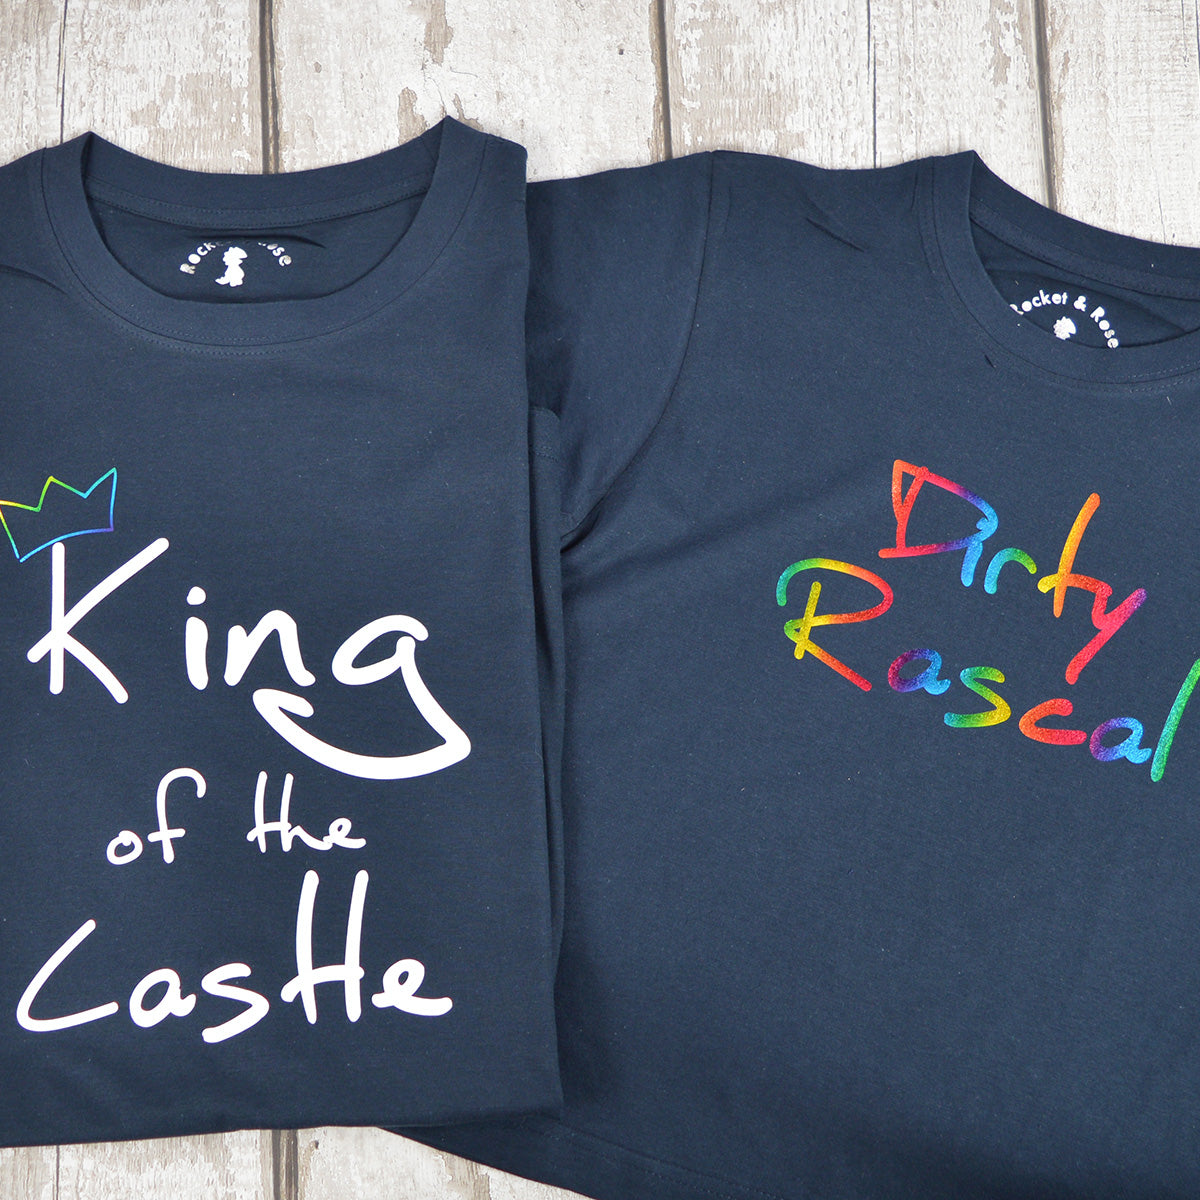 'King of the Castle & Dirty Rascal' Matching T-Shirt Set